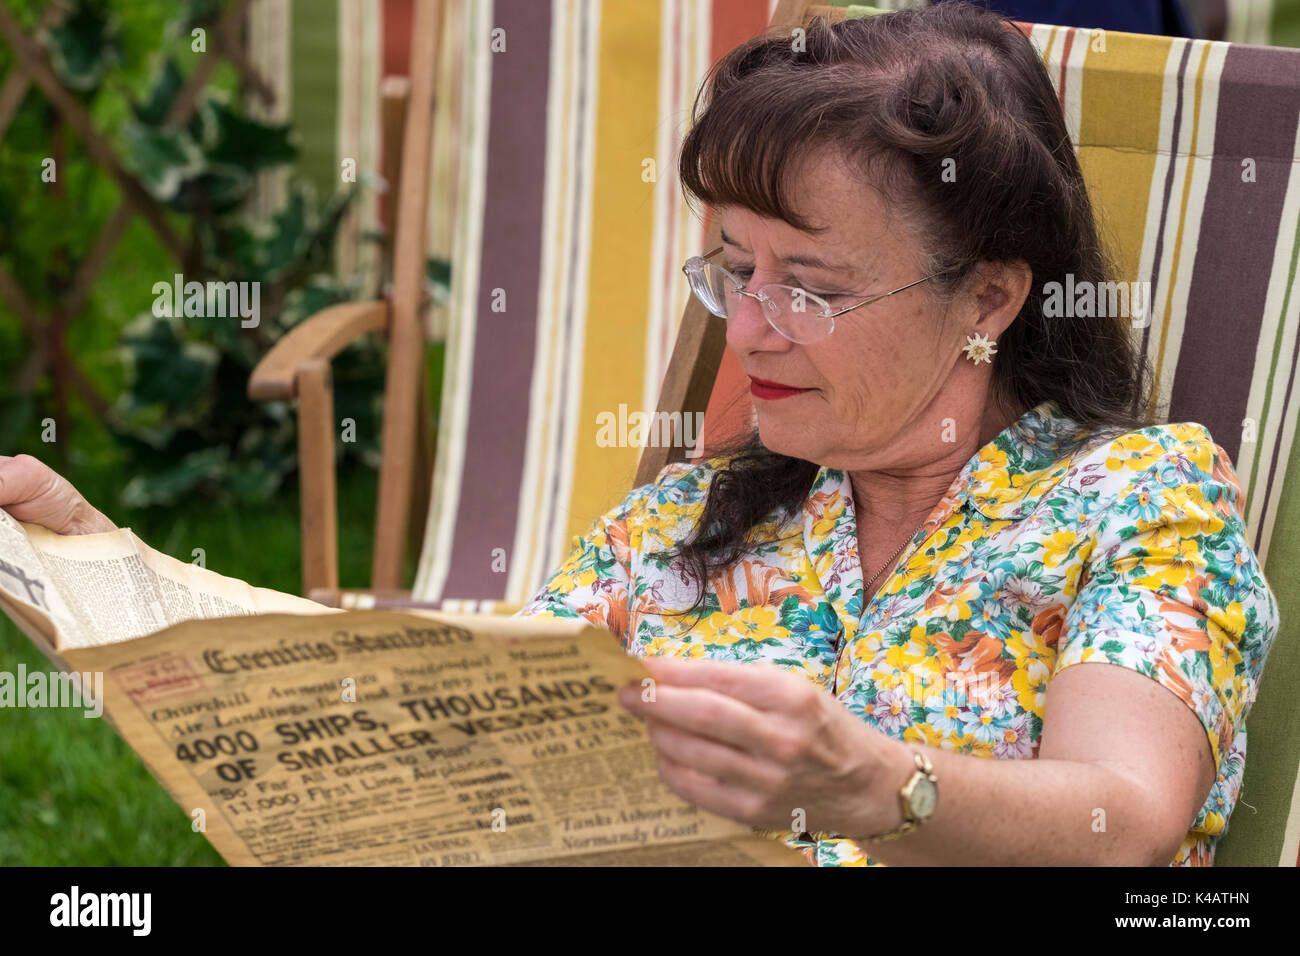 Woman at a1940's Living History camp re-enactment event reading an old copy of the Evening Standard newspaper with historical news about the period. - Stock Image